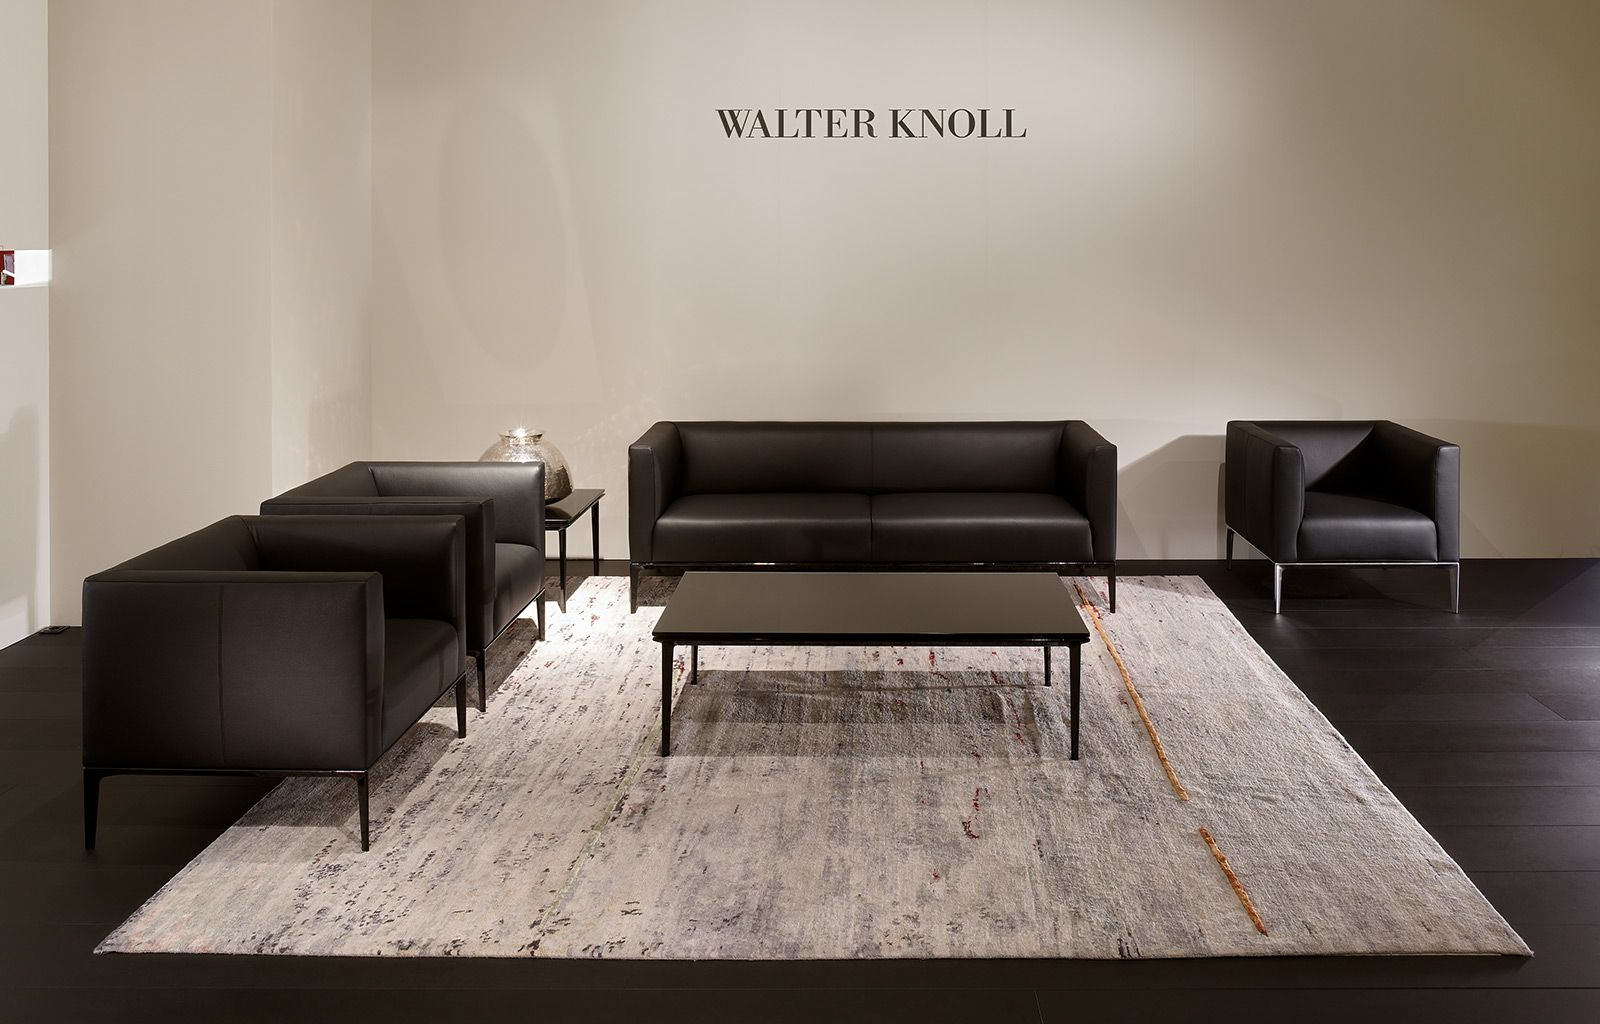 walter knoll jaan sofa armchair table design. Black Bedroom Furniture Sets. Home Design Ideas